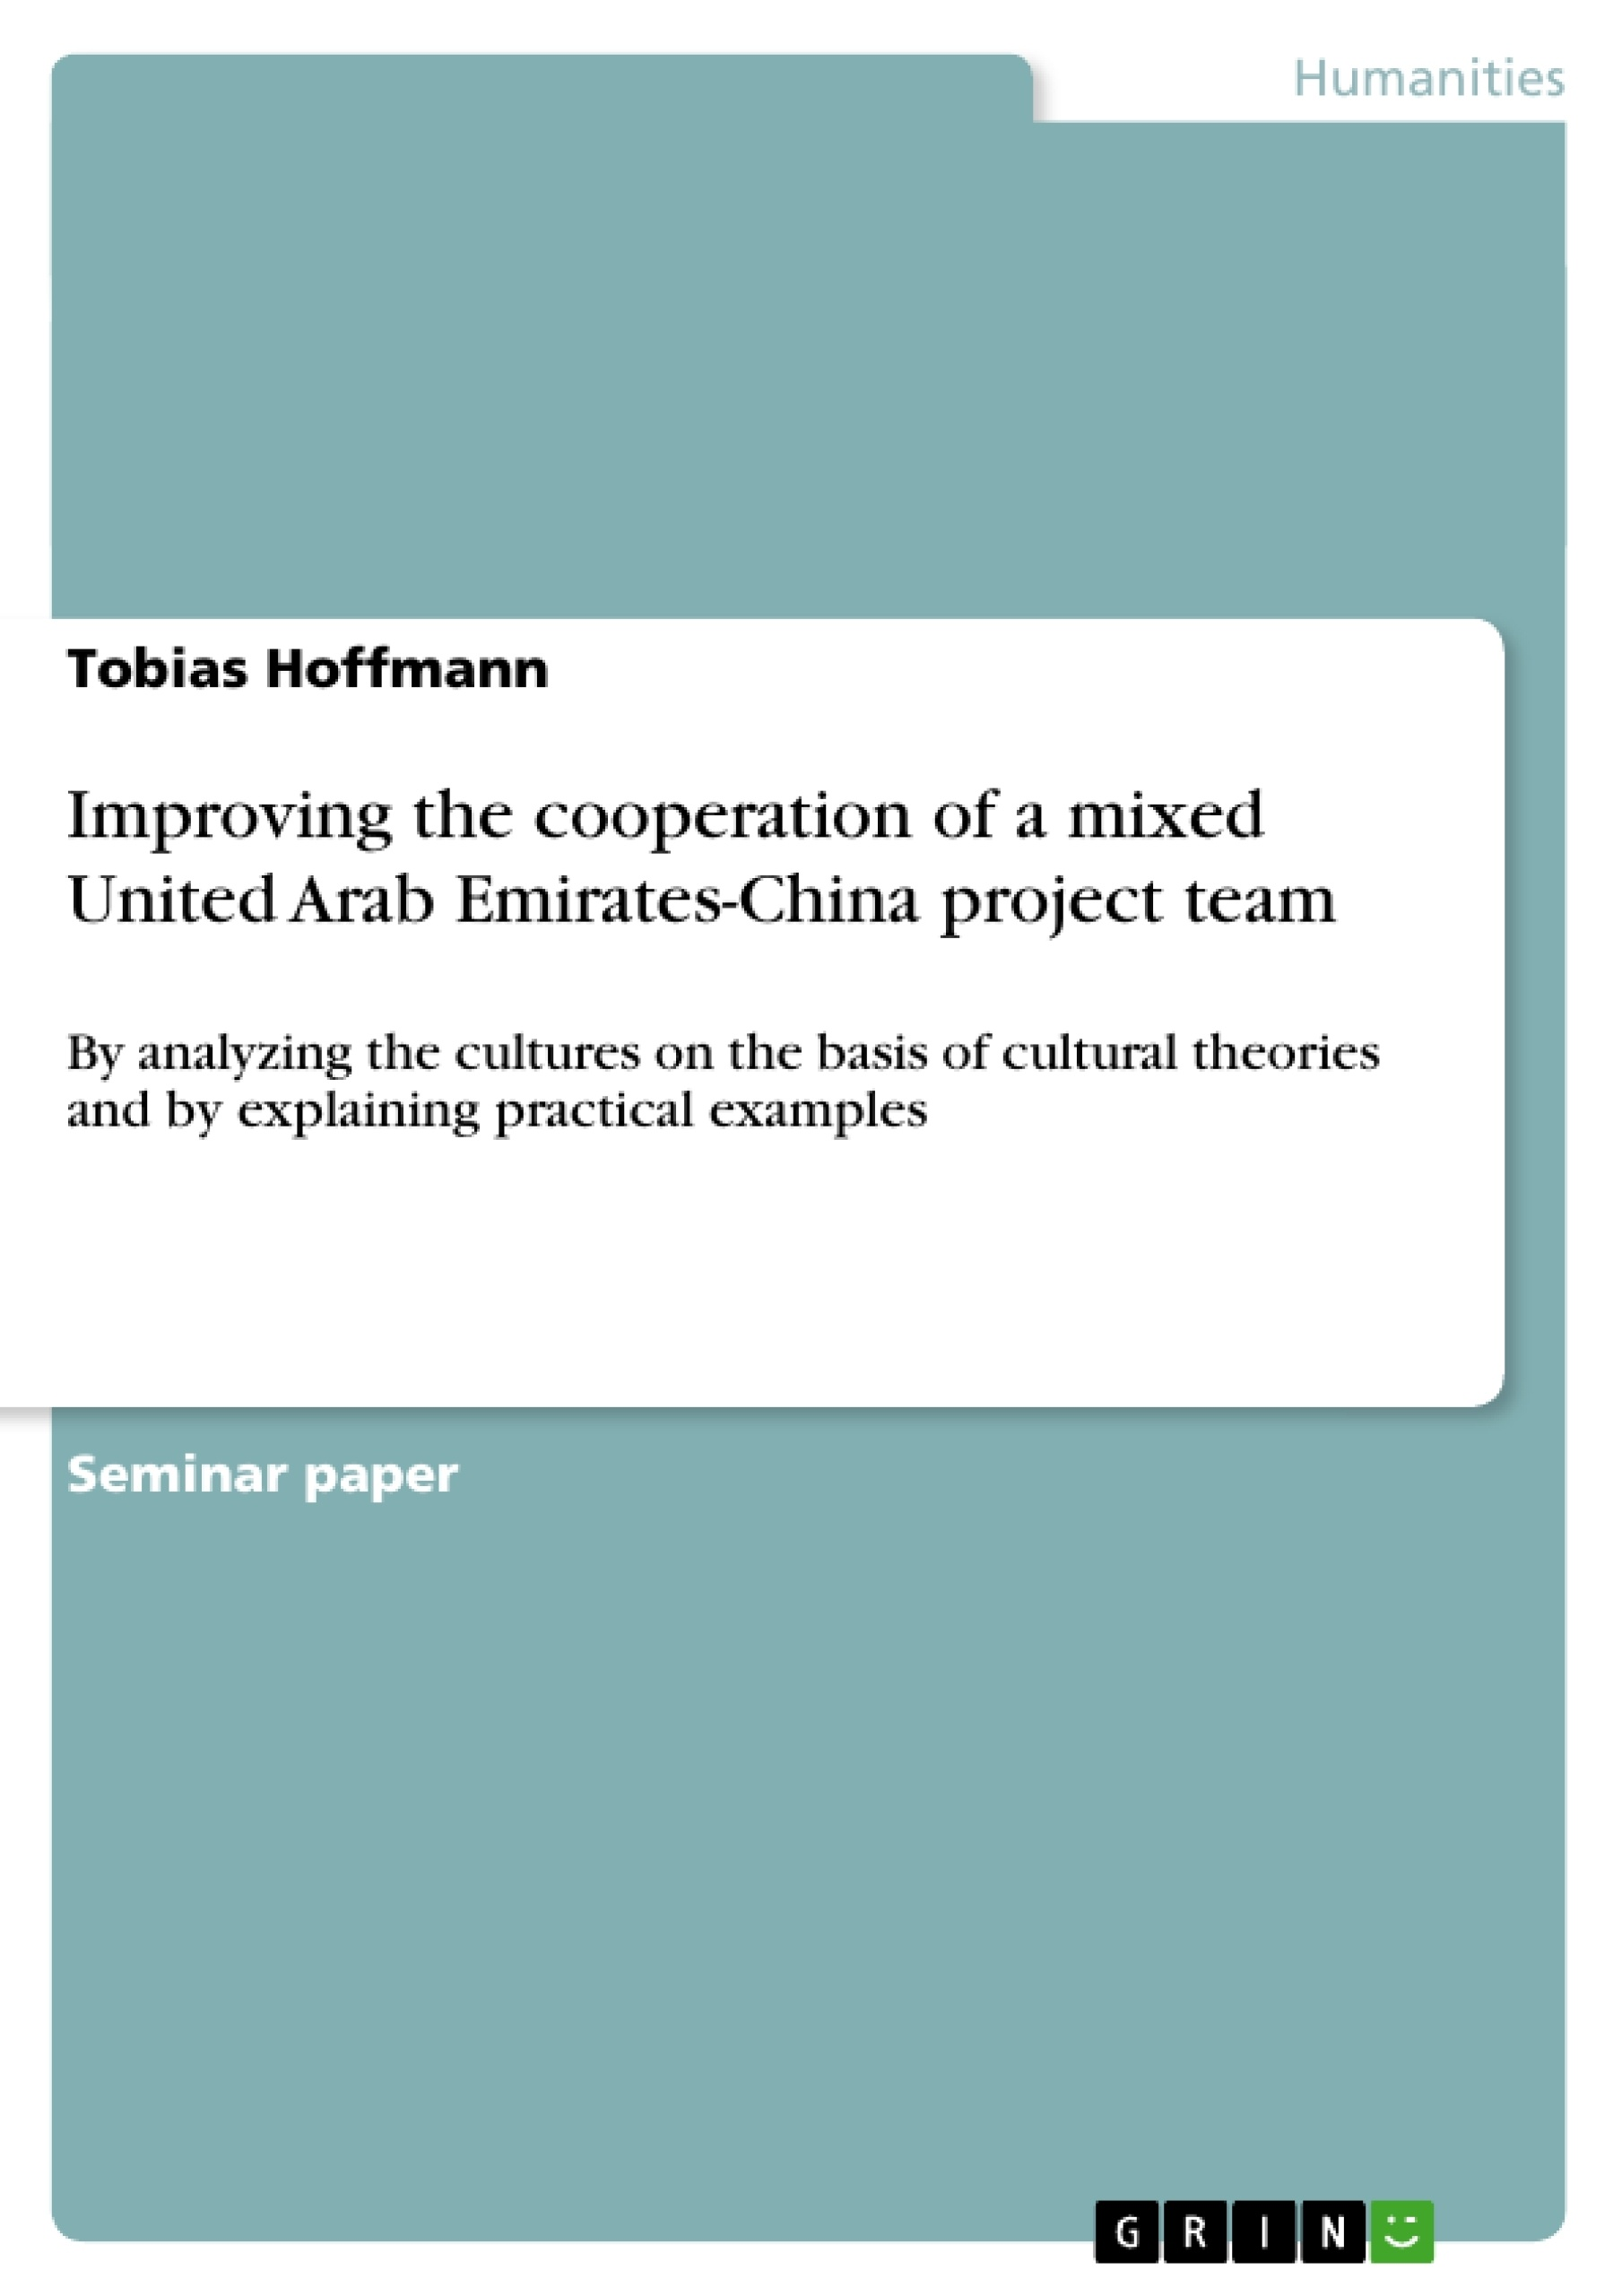 Title: Improving the cooperation of a mixed United Arab Emirates-China project team